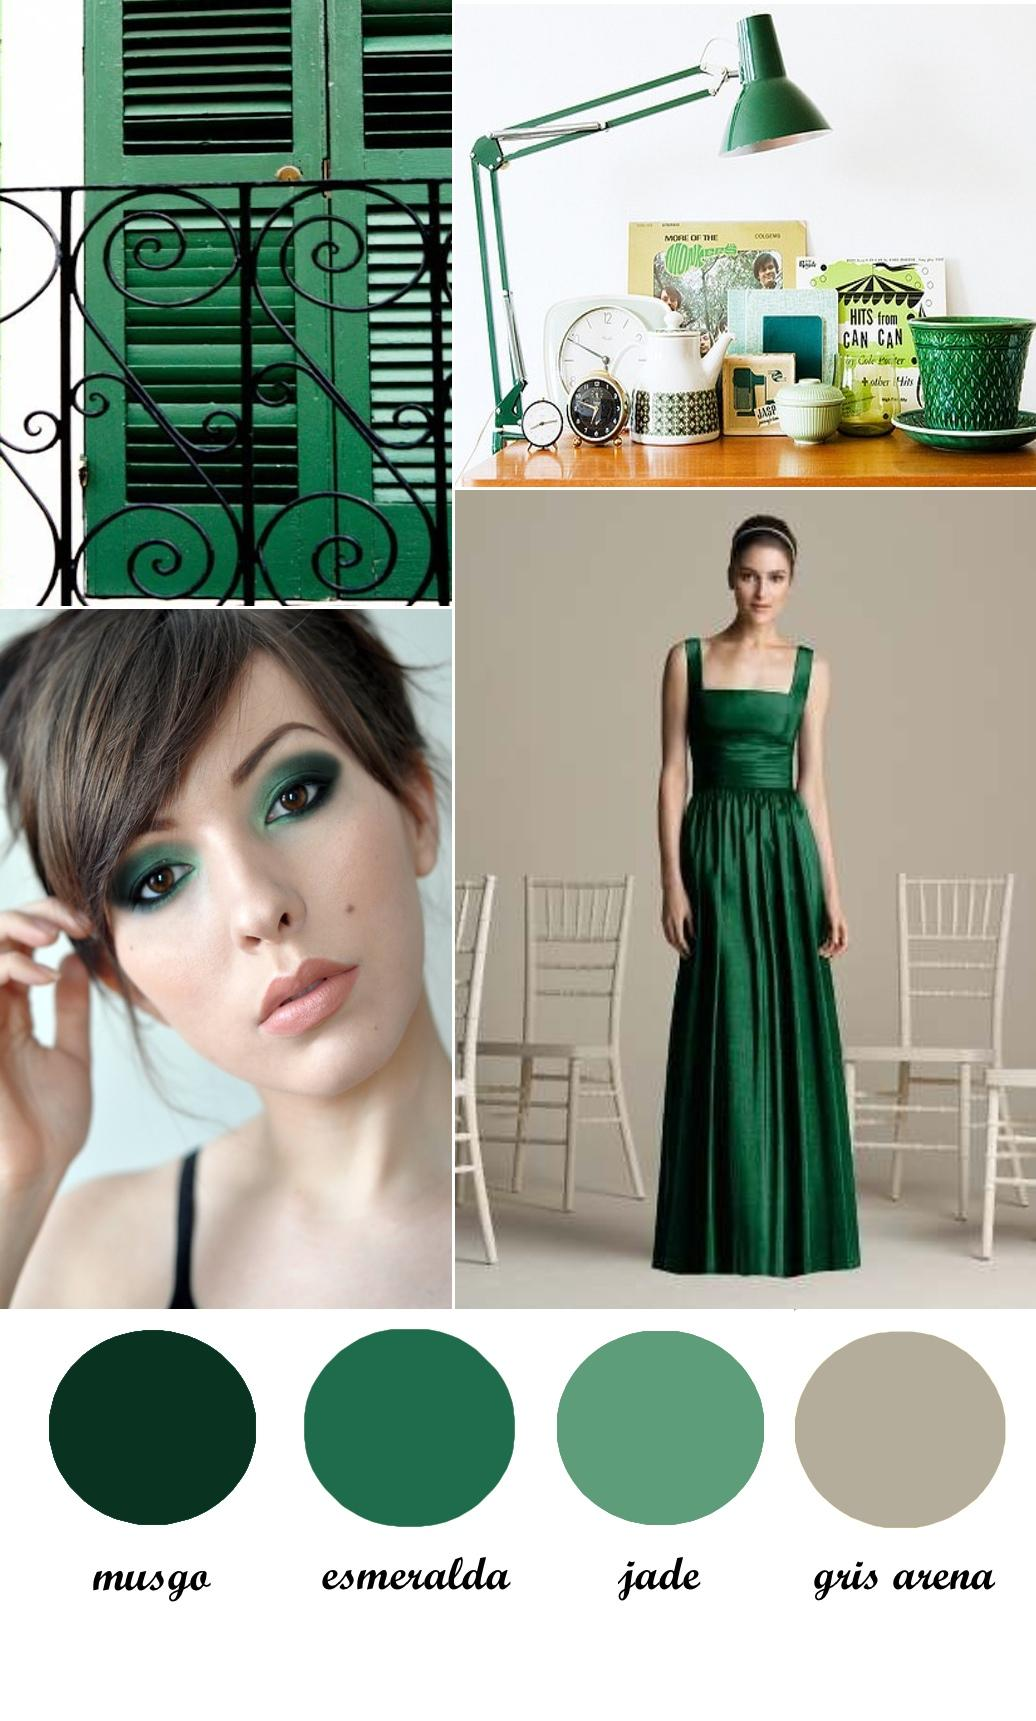 Colour Board #18. Think green